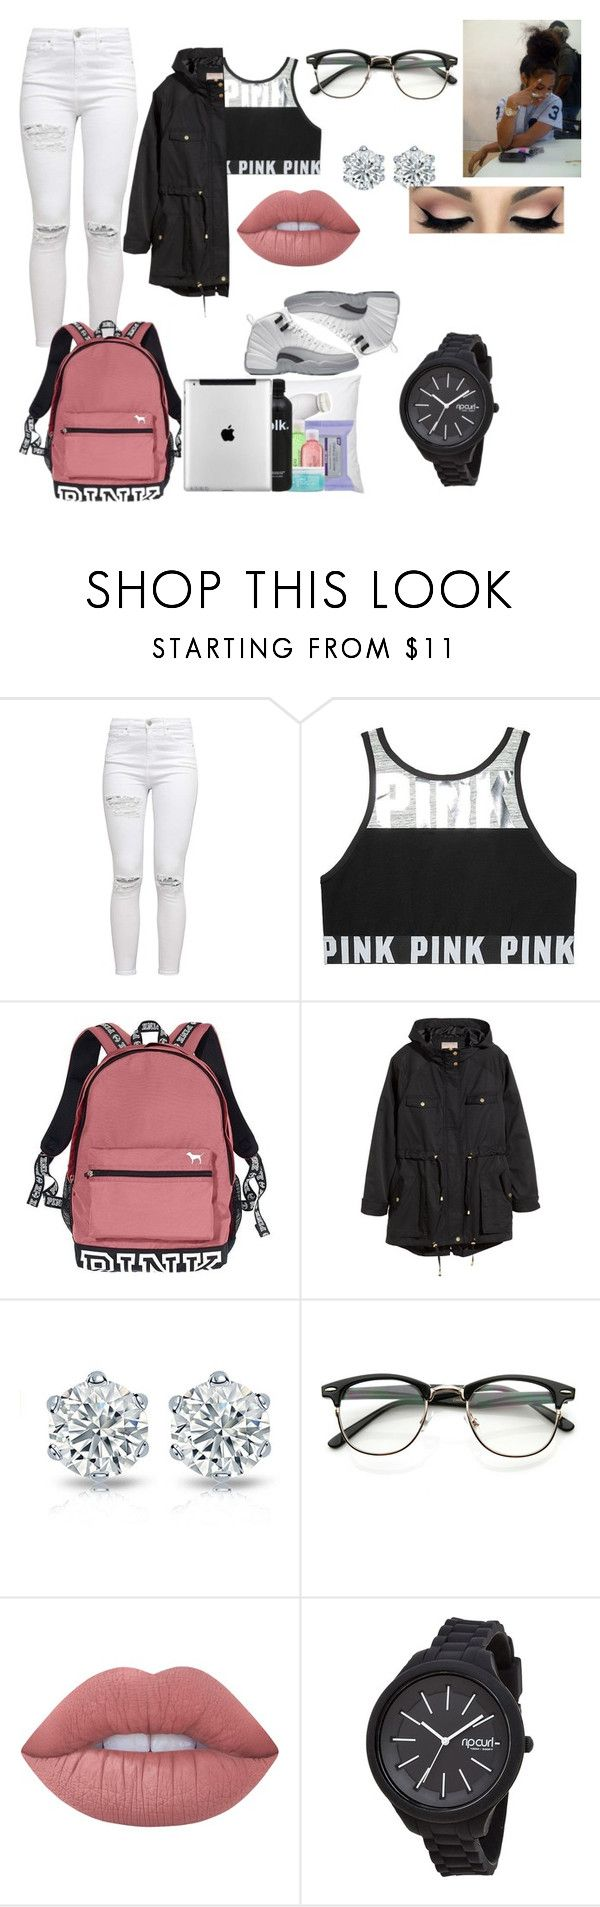 """""""Contest"""" by bigdaddycam43 ❤ liked on Polyvore featuring Victoria's Secret, H&M, Lime Crime and Rip Curl"""